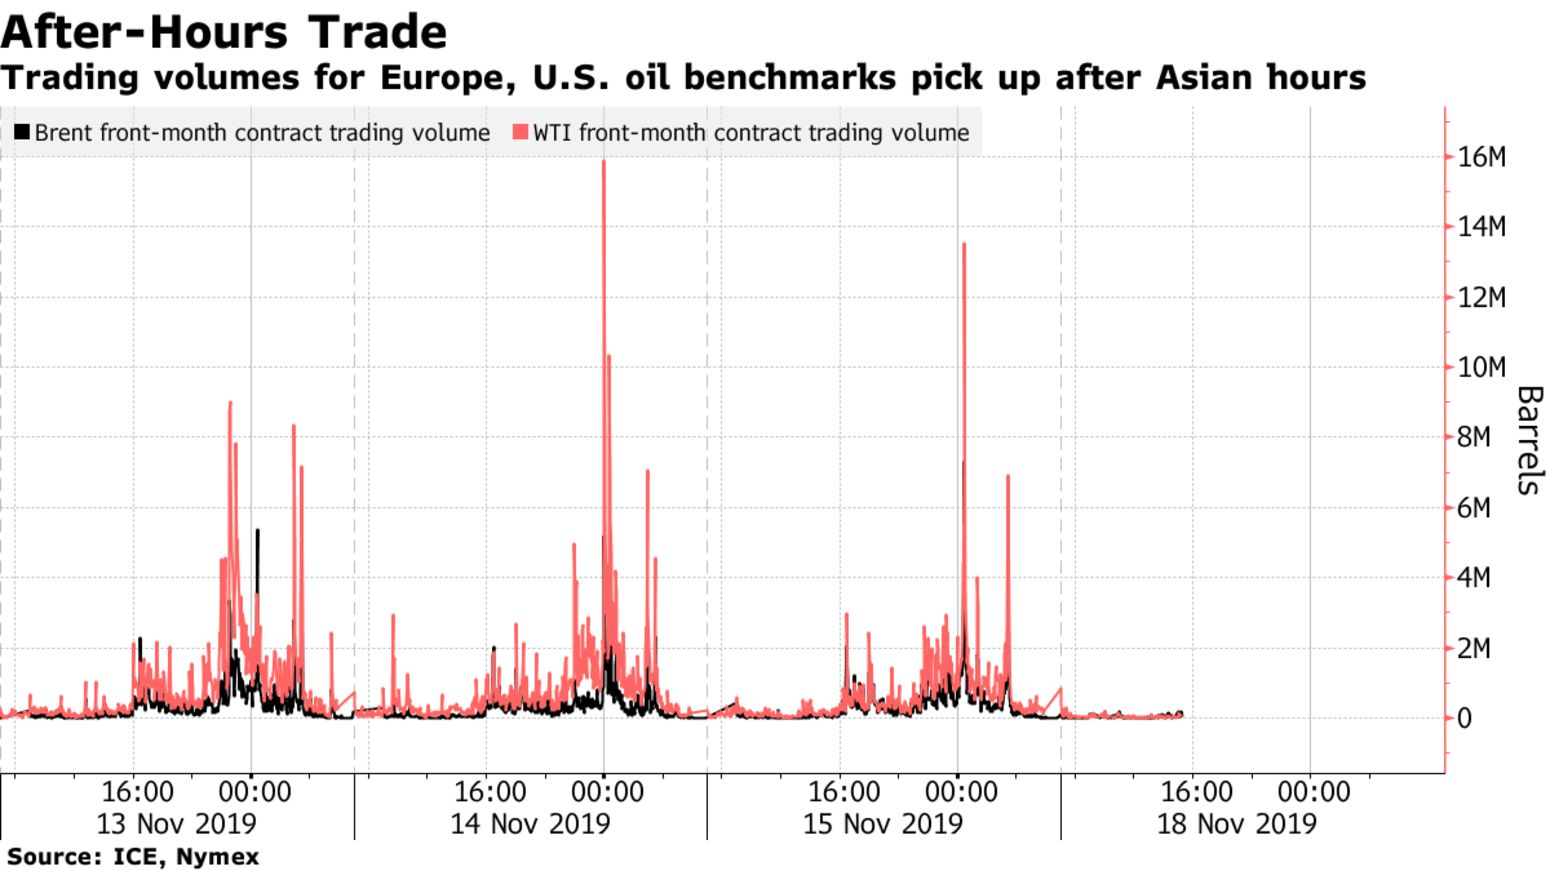 Trading volumes for Europe, U.S. oil benchmarks pick up after Asian hours